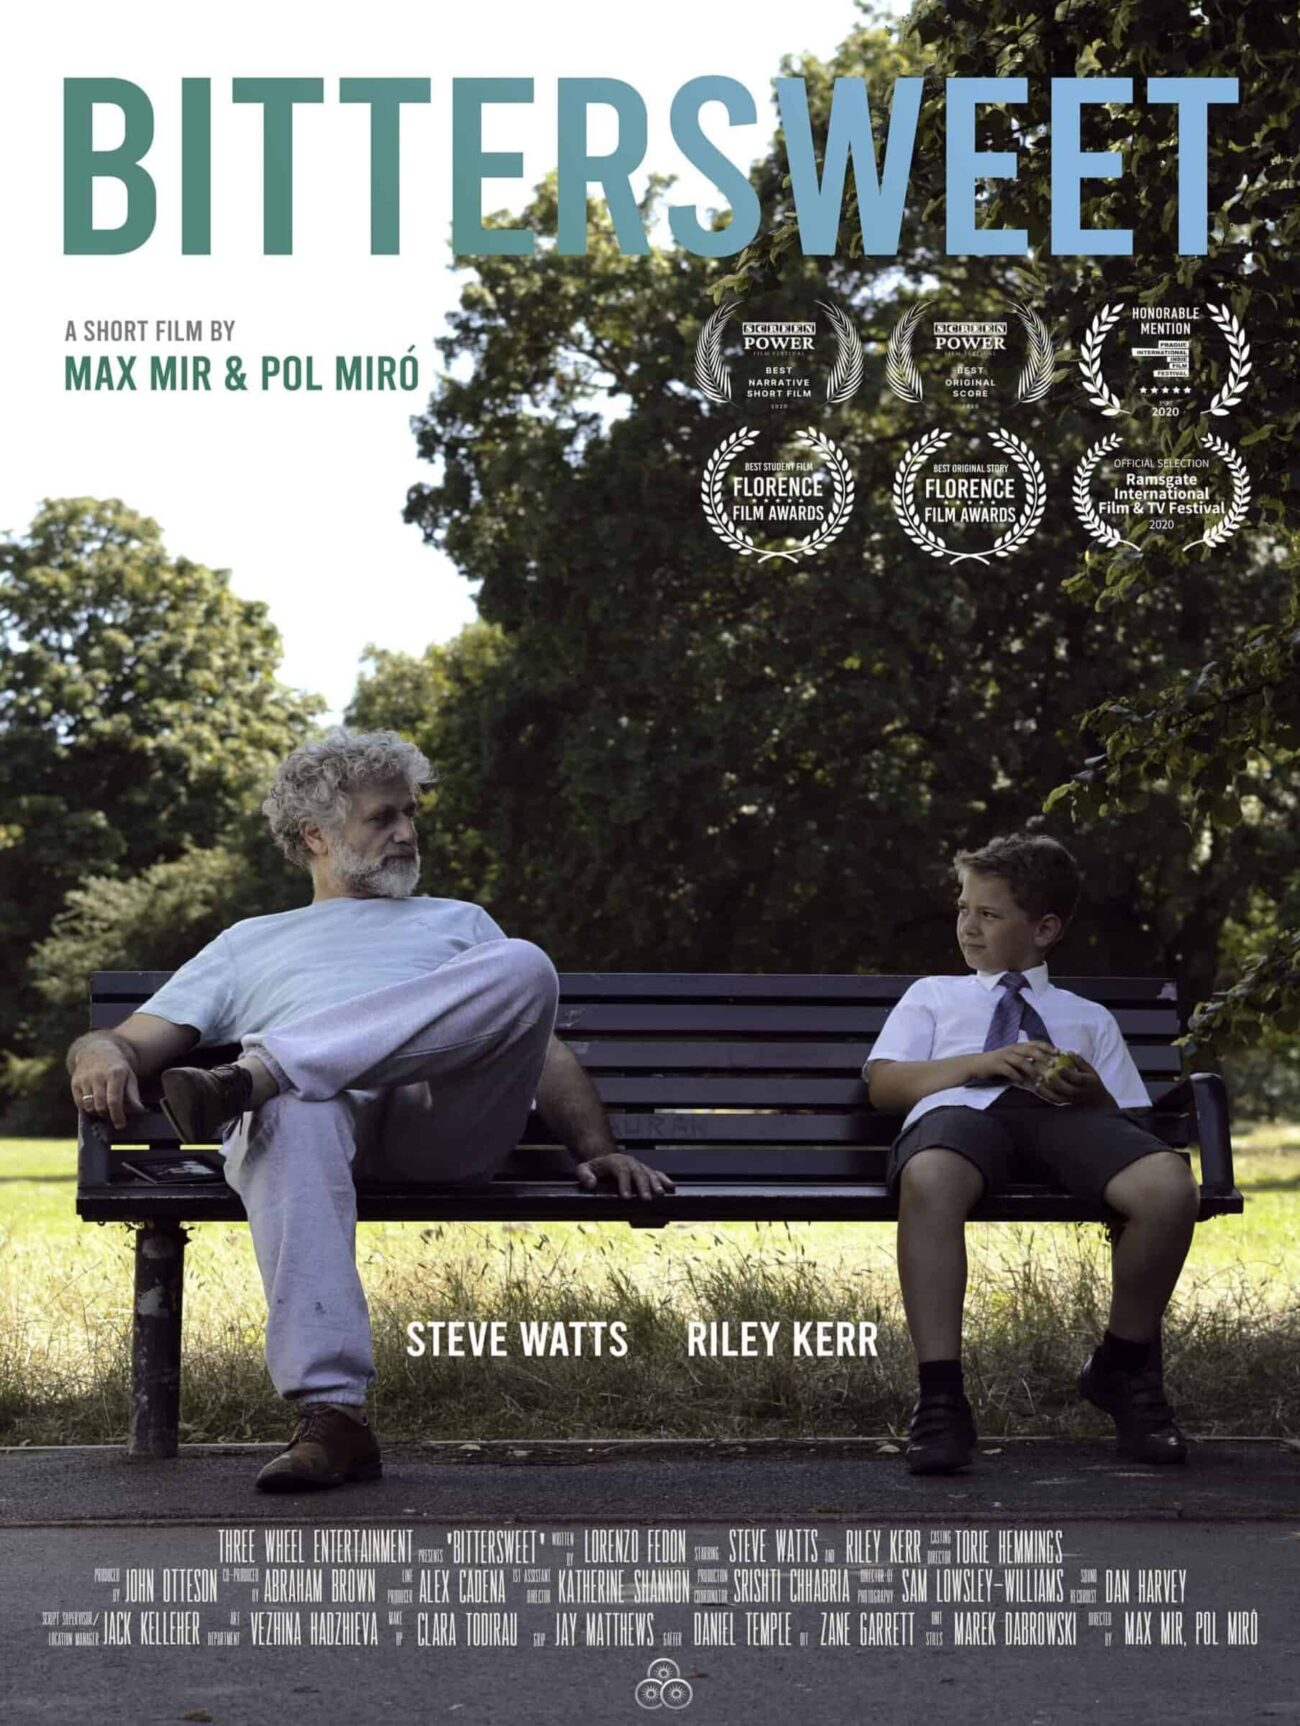 After plenty of success in the short film world, indie filmmaker Max Mir is back once again with his latest short, 'Bittersweet'. Here's Mir's interview.